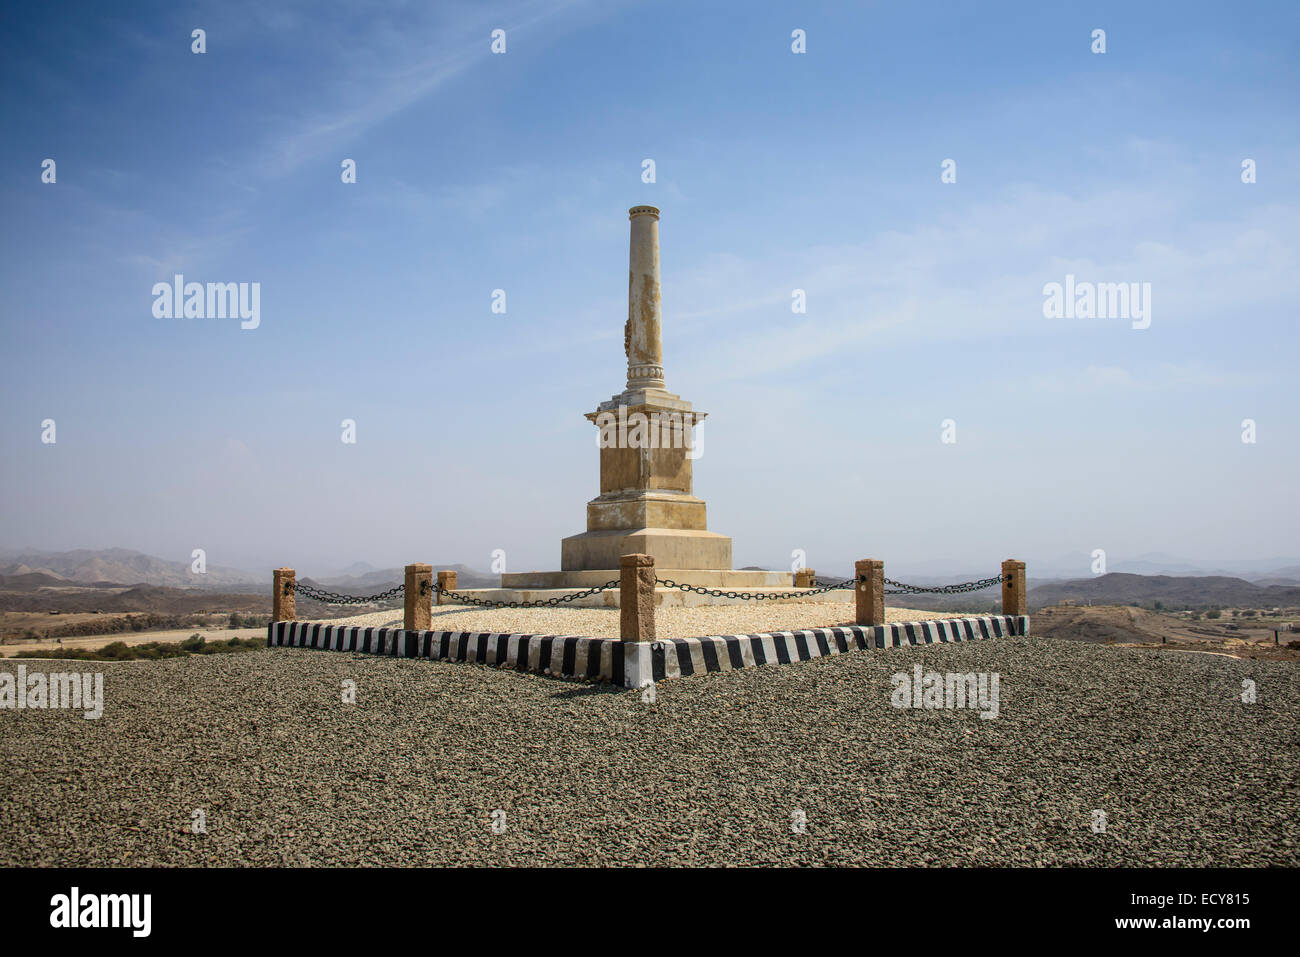 Monument to the first defeat of the white people in Eritrea, along the road from Massawa to Asmarra, Eritrea - Stock Image